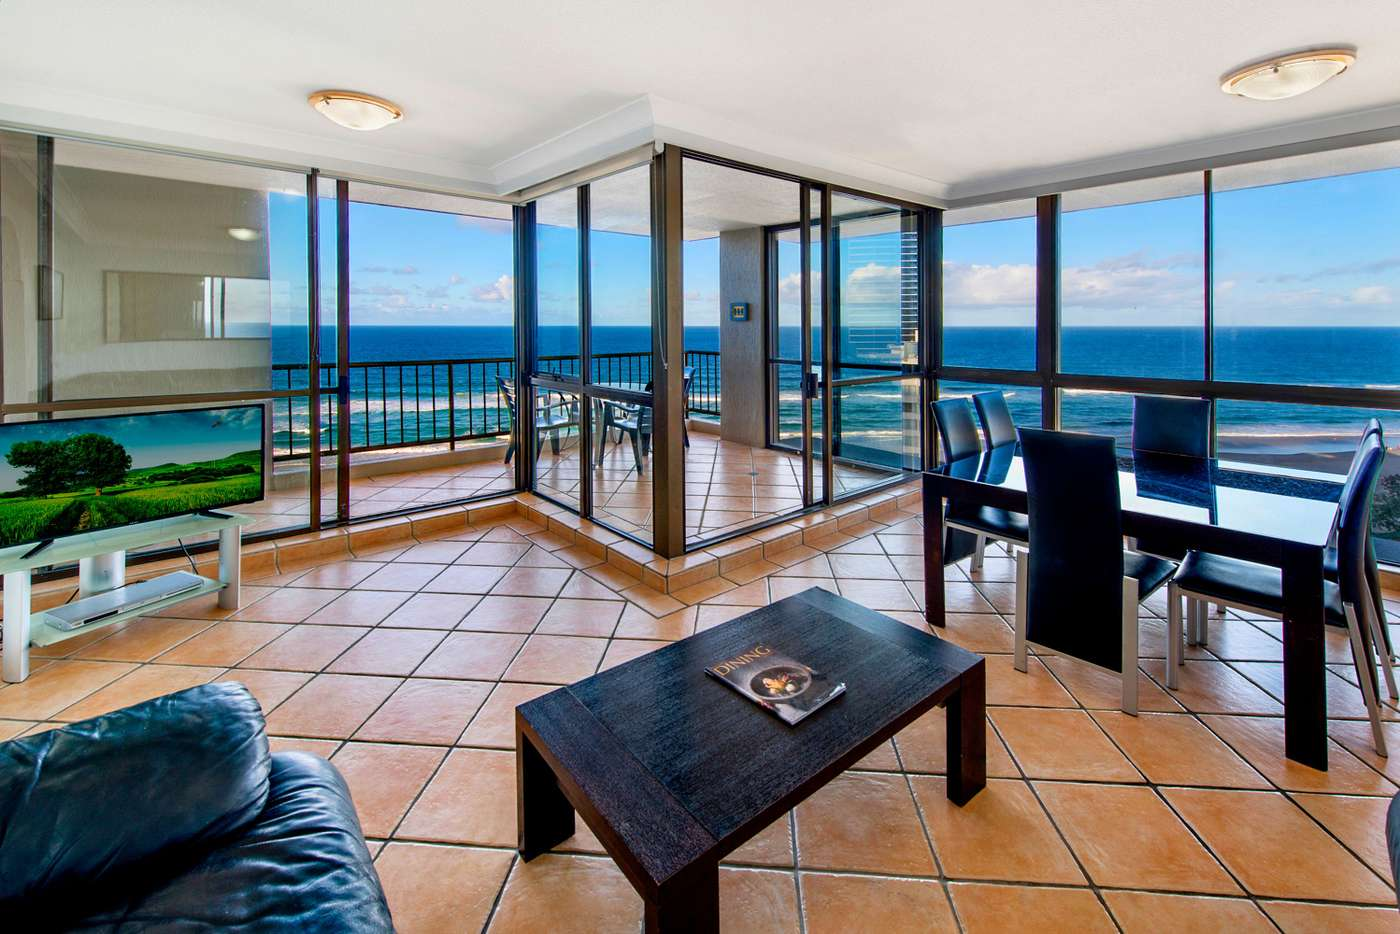 Main view of Homely apartment listing, 198 Ferny Avenue, Surfers Paradise, QLD 4217